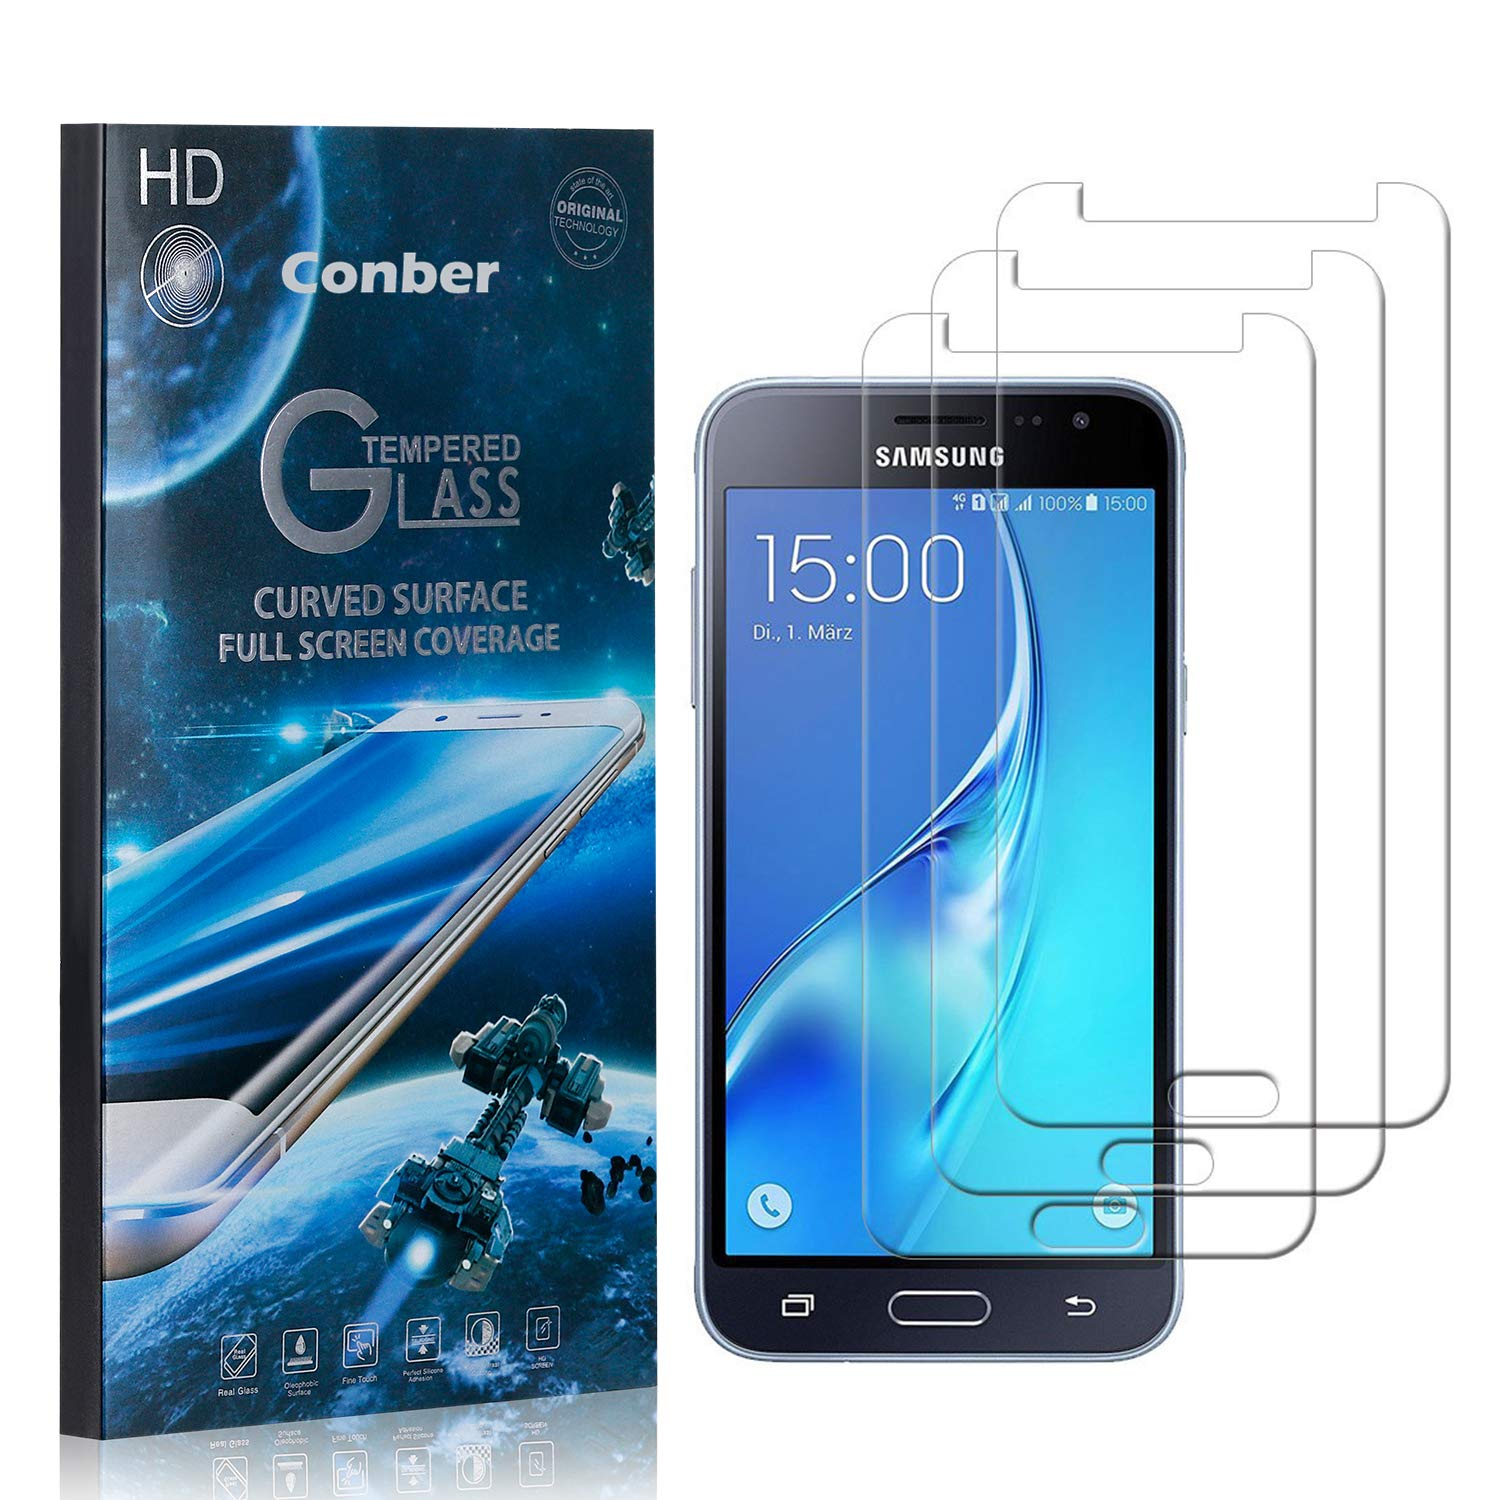 Conber 3 Pack Screen Max 58% OFF Protector for Tampa Mall 2016 Samsung Sc Galaxy J3